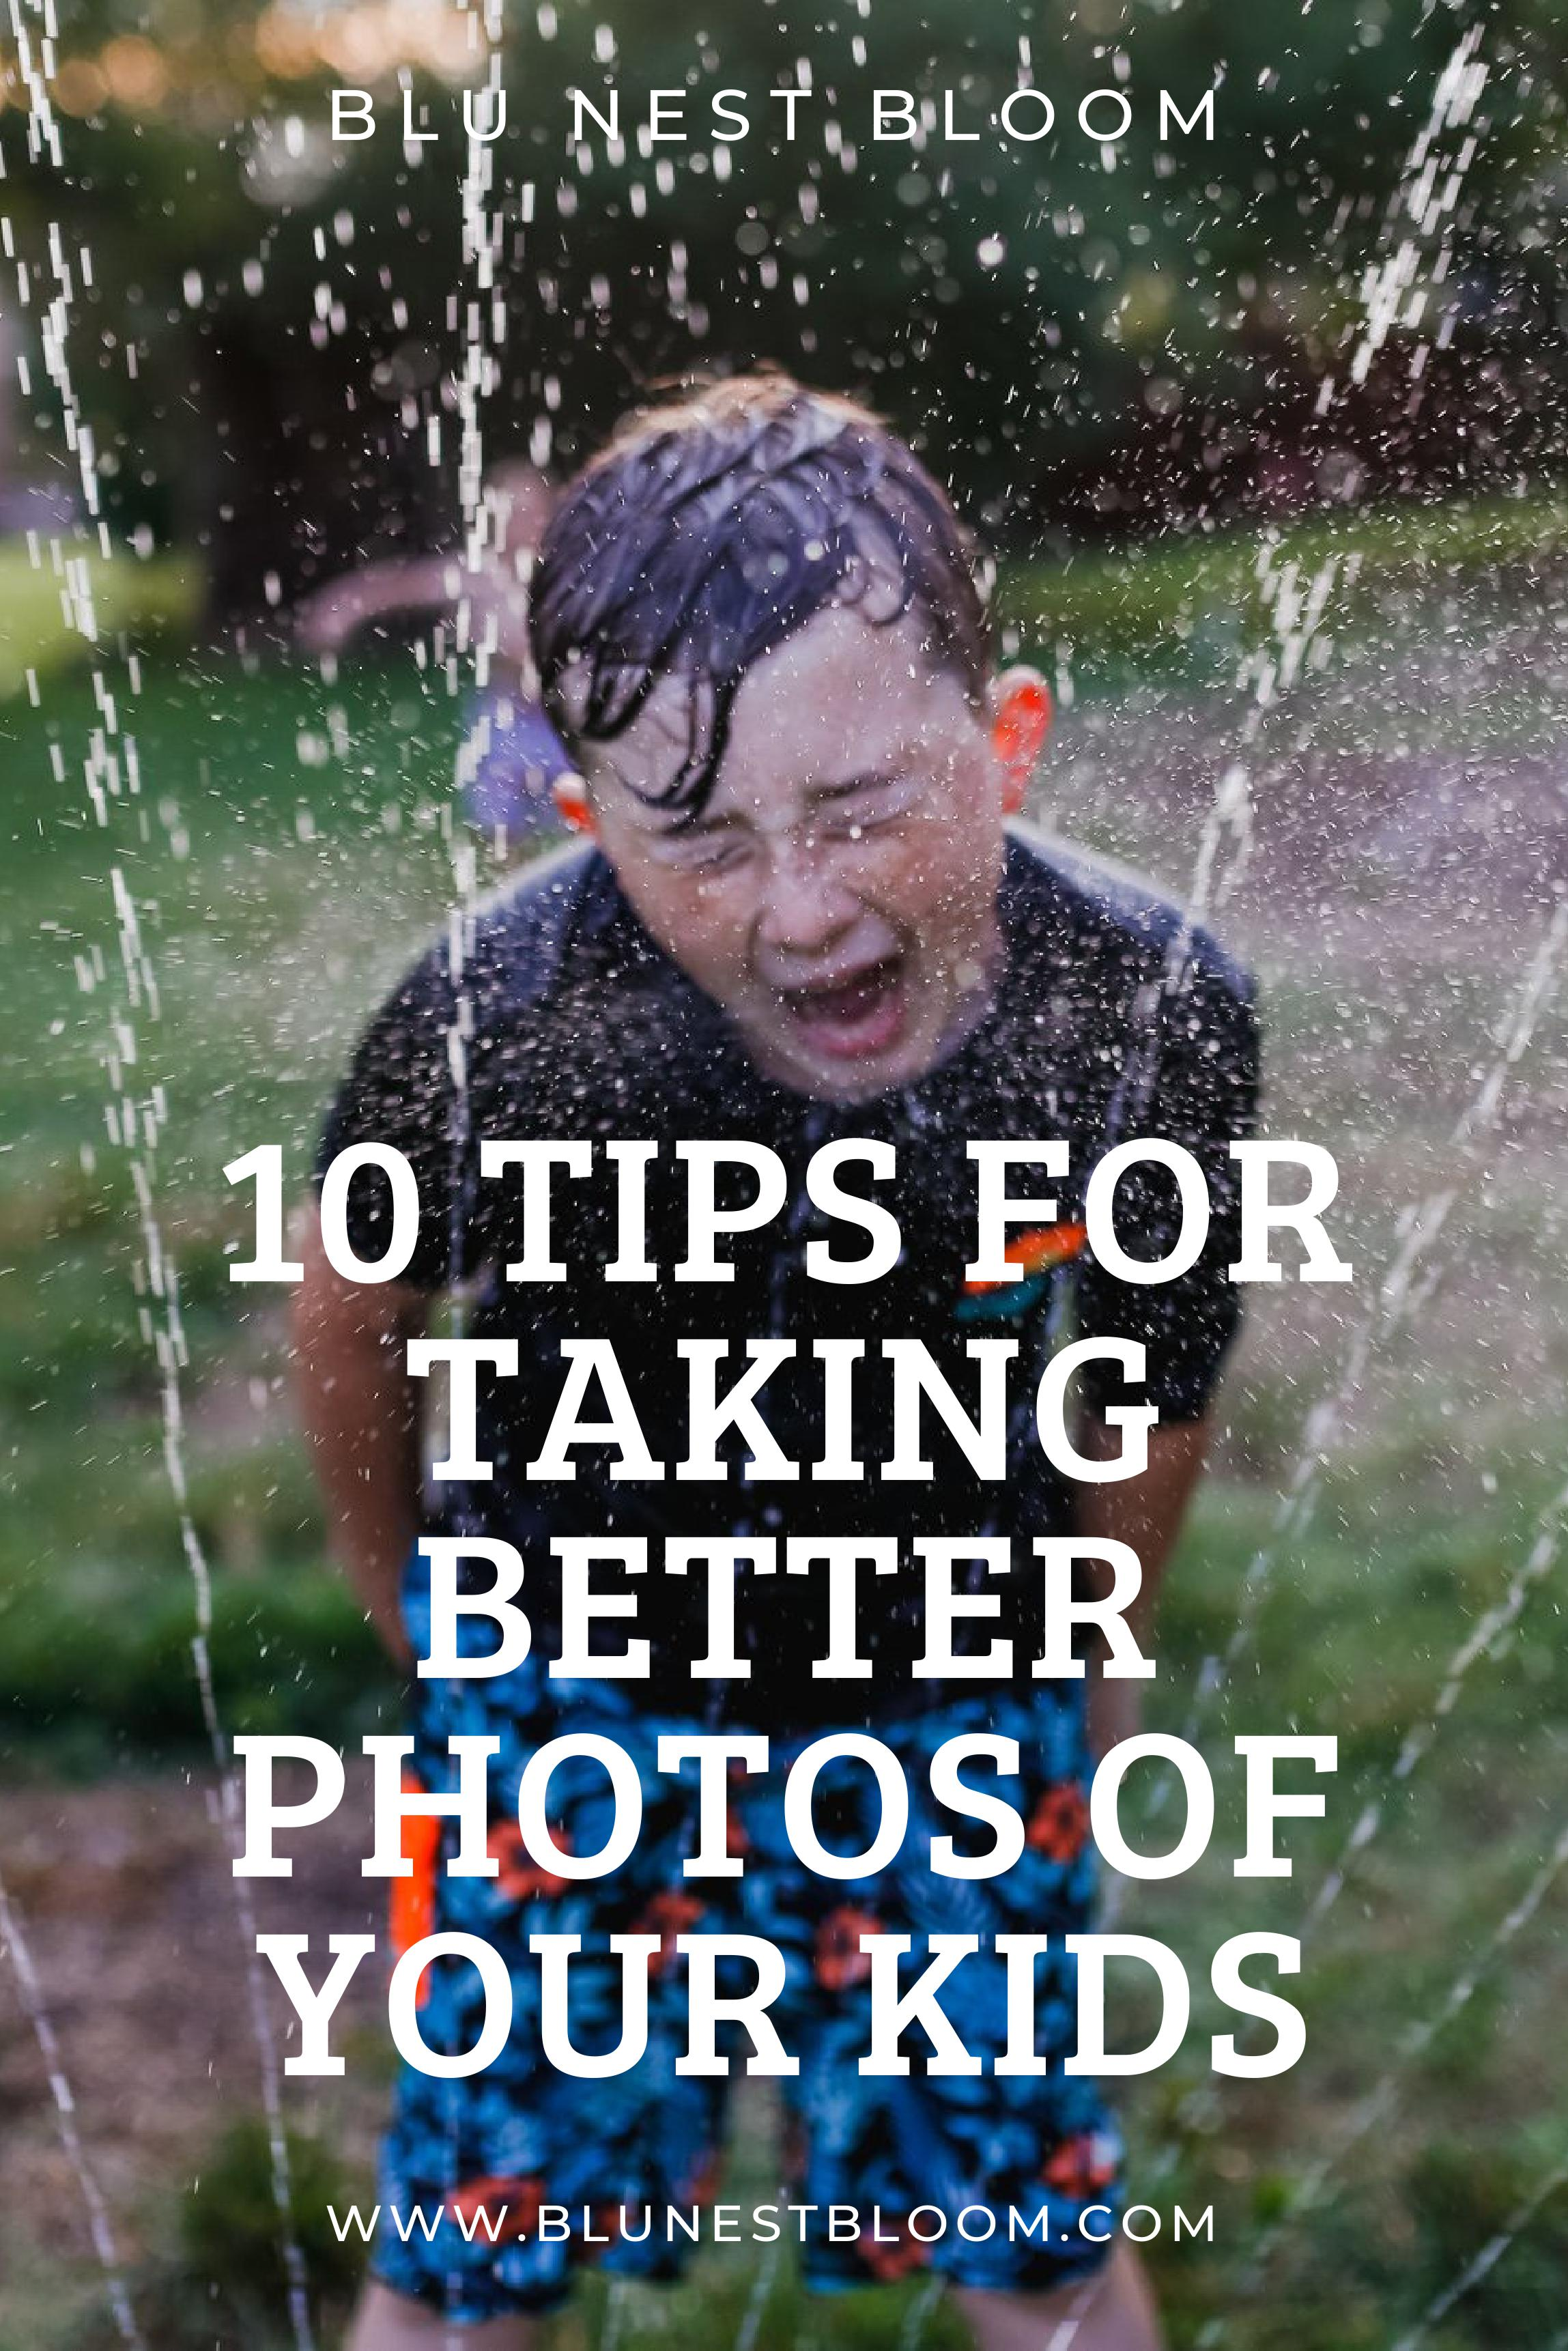 10 tips for taking better photos of your kids